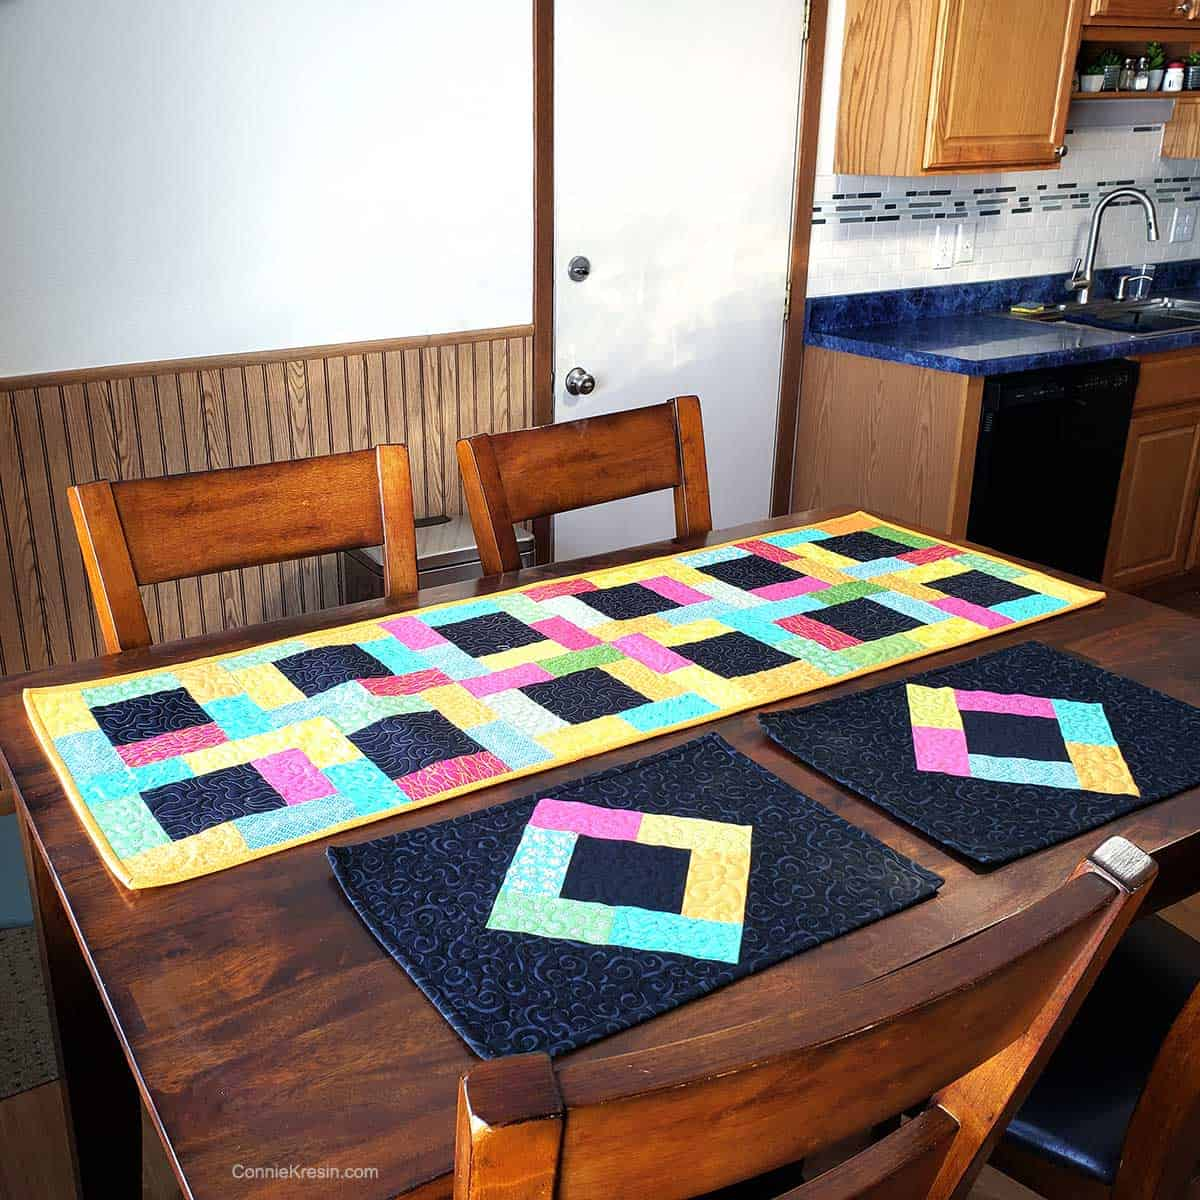 Midnight Glow placemats and runner on kitchen table